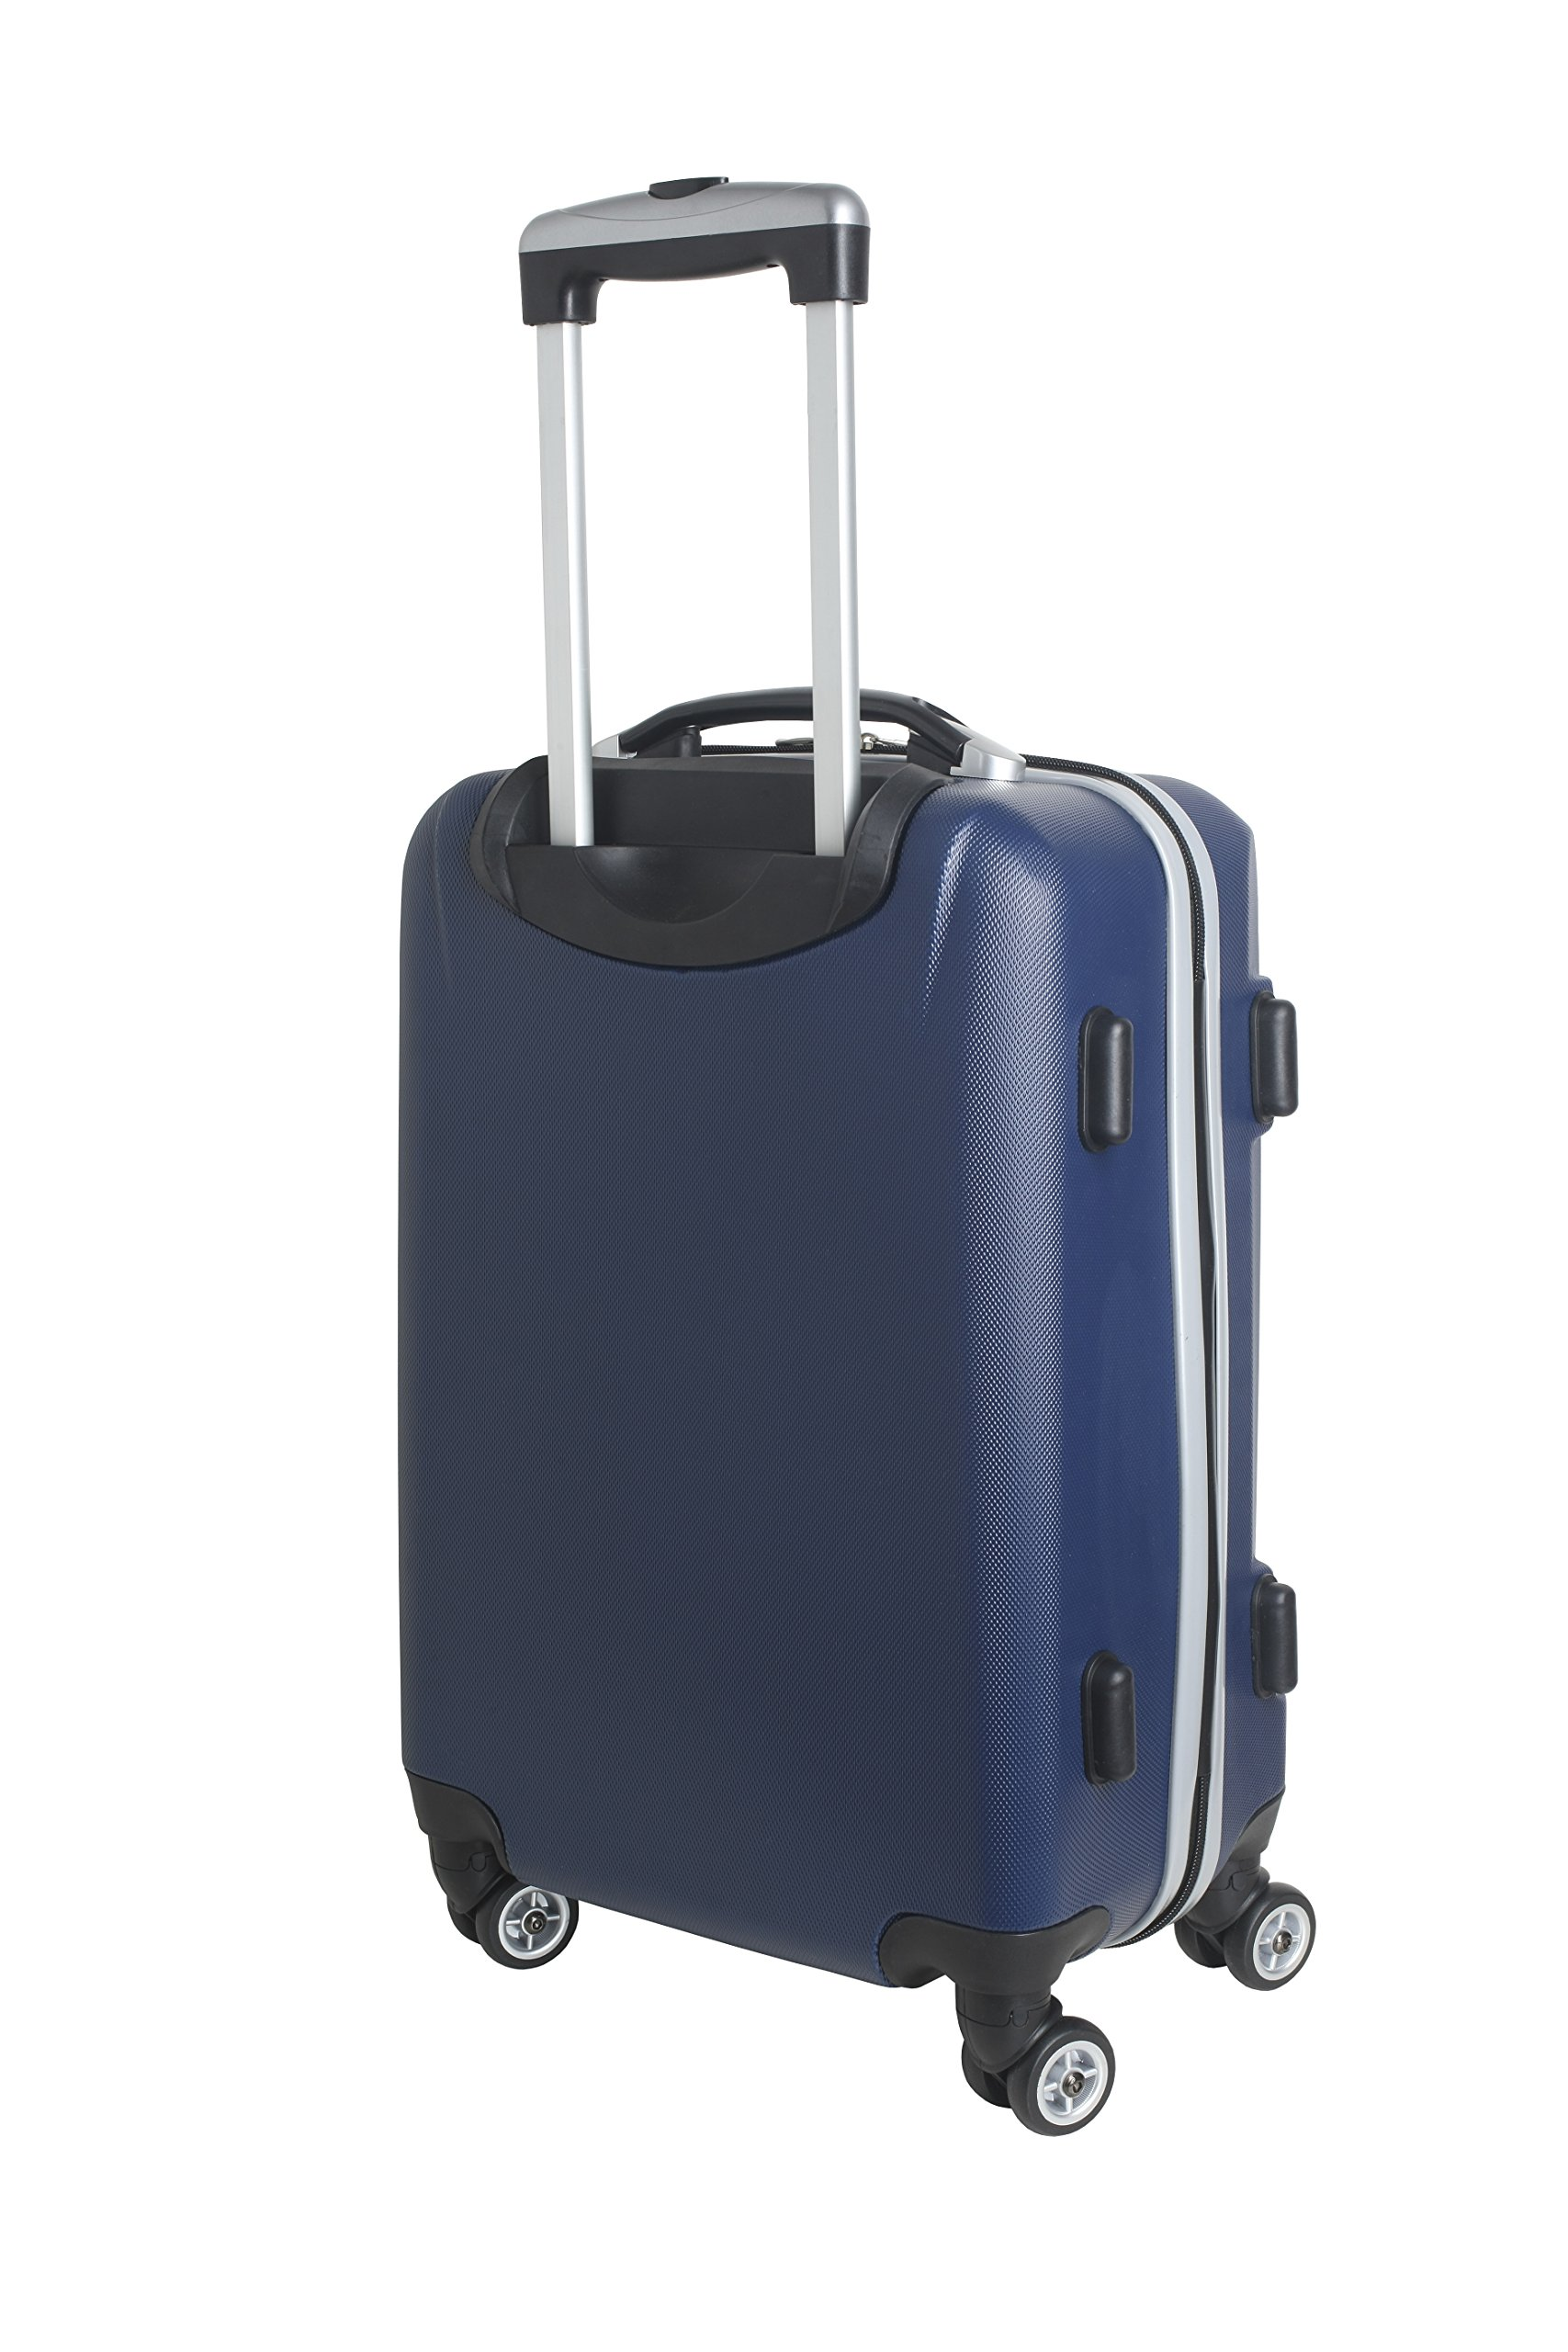 Denco NFL Indianapolis Colts Carry-On Hardcase Luggage Spinner, Navy by Denco (Image #4)